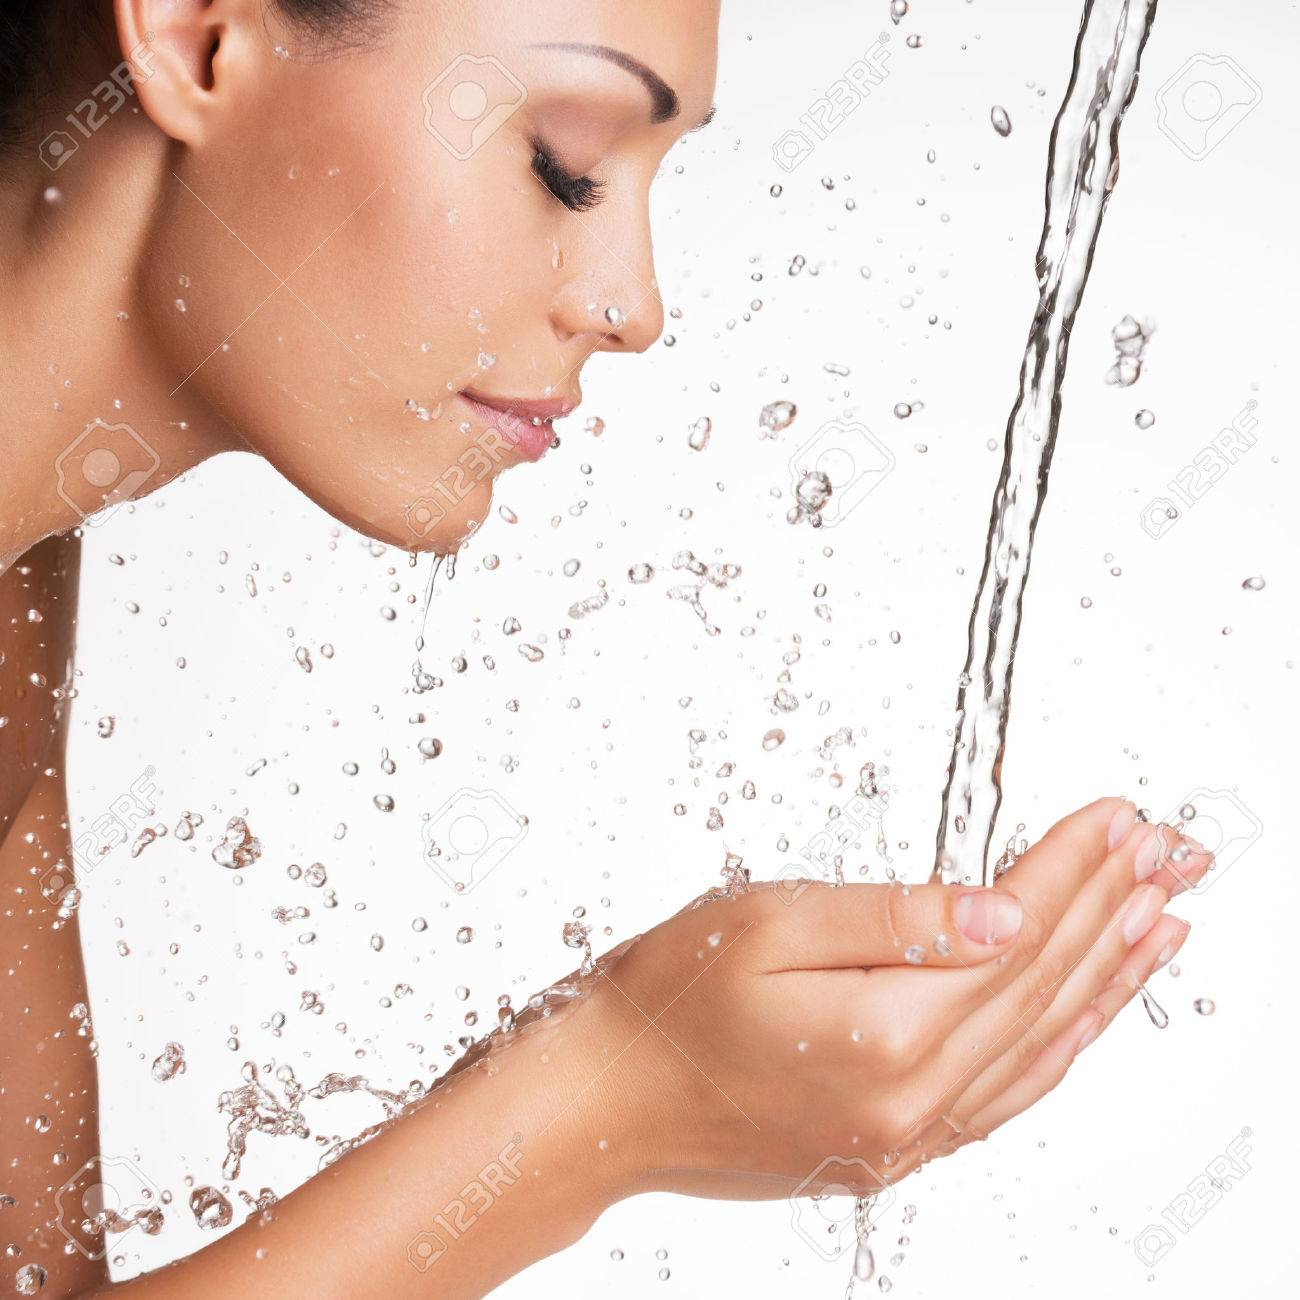 Closeup portrait of a beautiful woman washing her clean face with water Stock Photo - 23233454